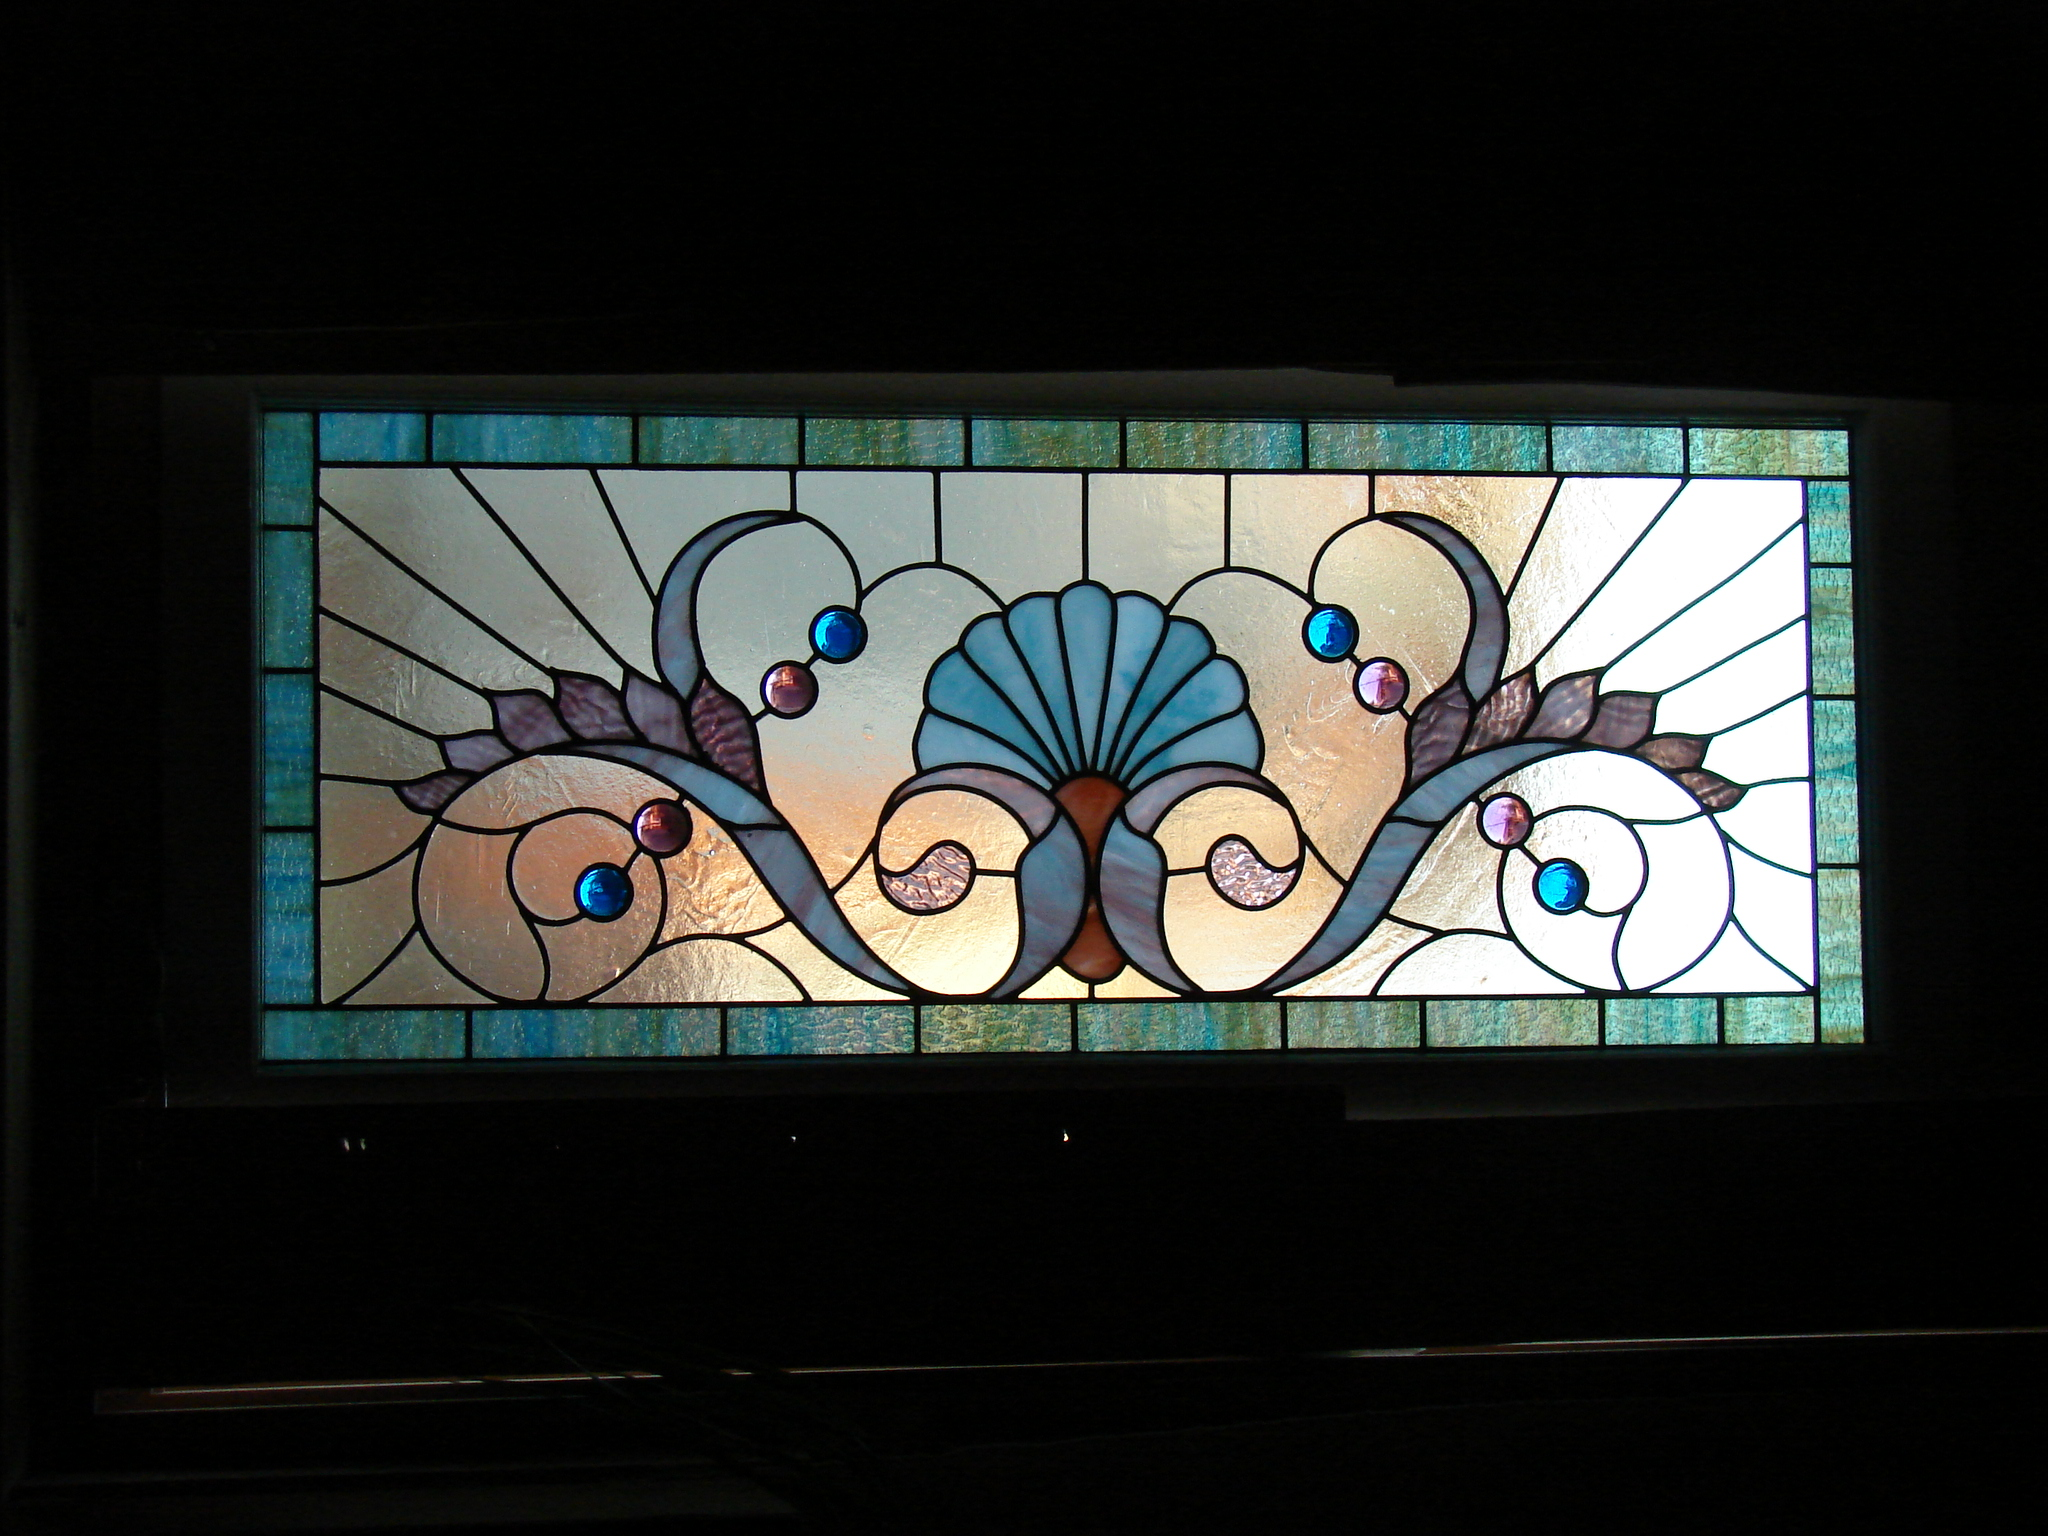 Historic Reproduction upper floor bedroom window transom  circa 1895 - 429 New Jersey Ave. S.E. Washington D.C.